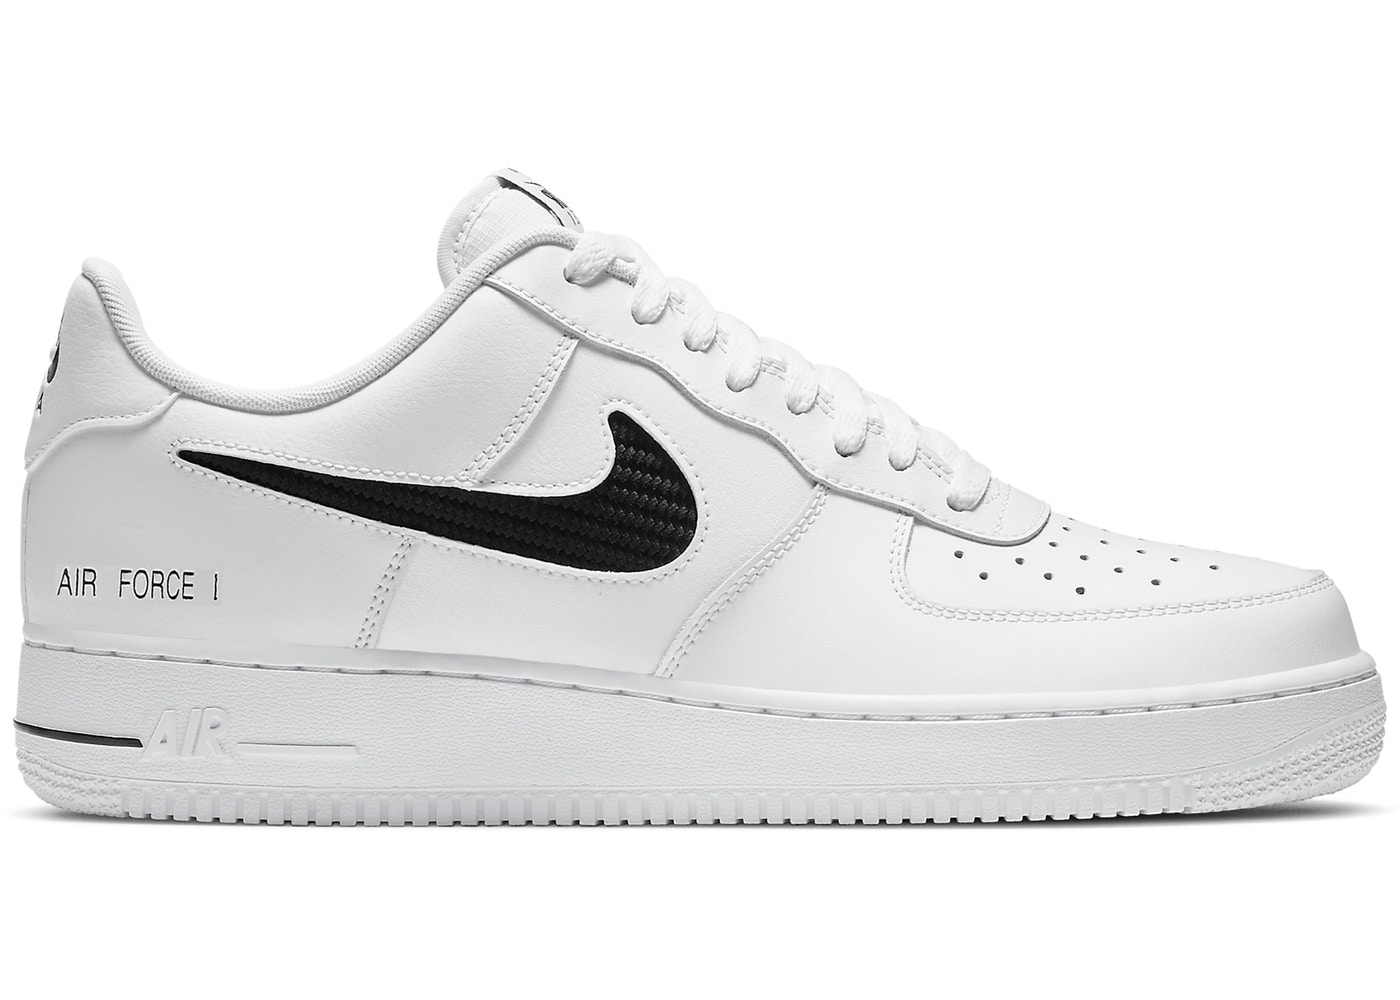 Nike Air Force 1 Low Cut Out Swoosh White Black Cz7377 100